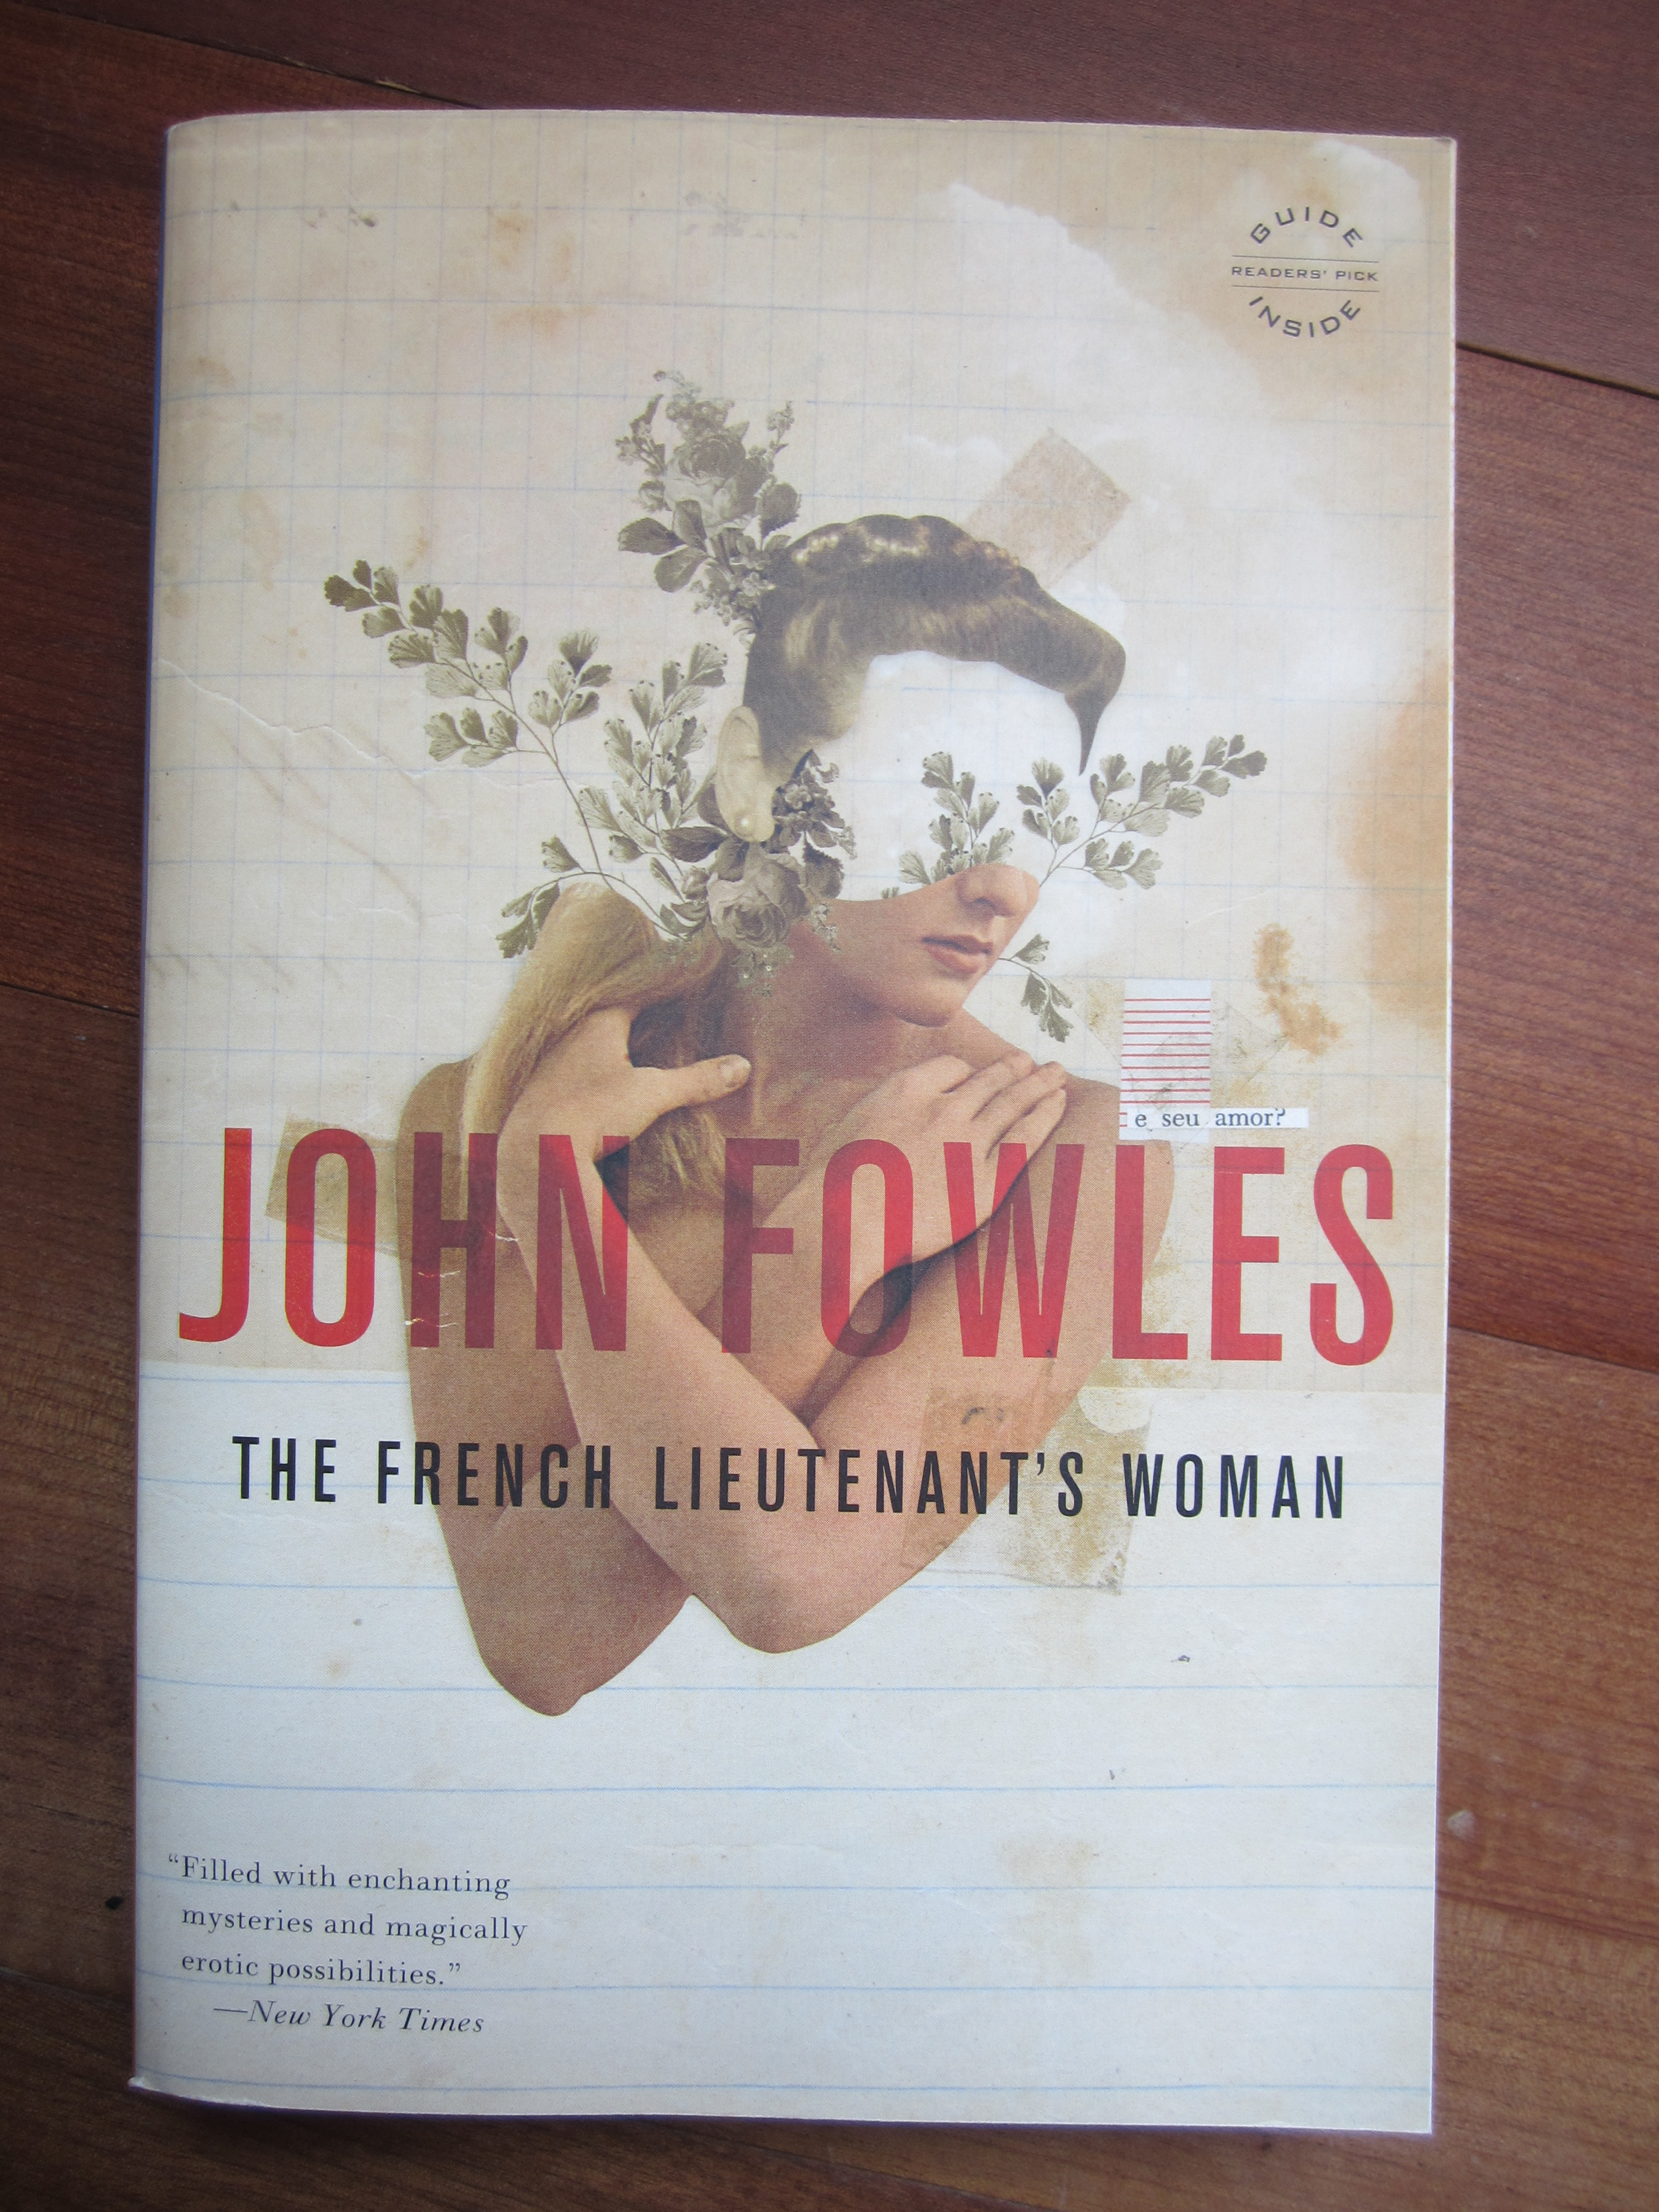 a review of the authorship style used in the french lieutenants woman by john fowles The french liutenant's woman – 1969 by: john fowles the french lieutenant's woman john robert fowles more prezis by author.